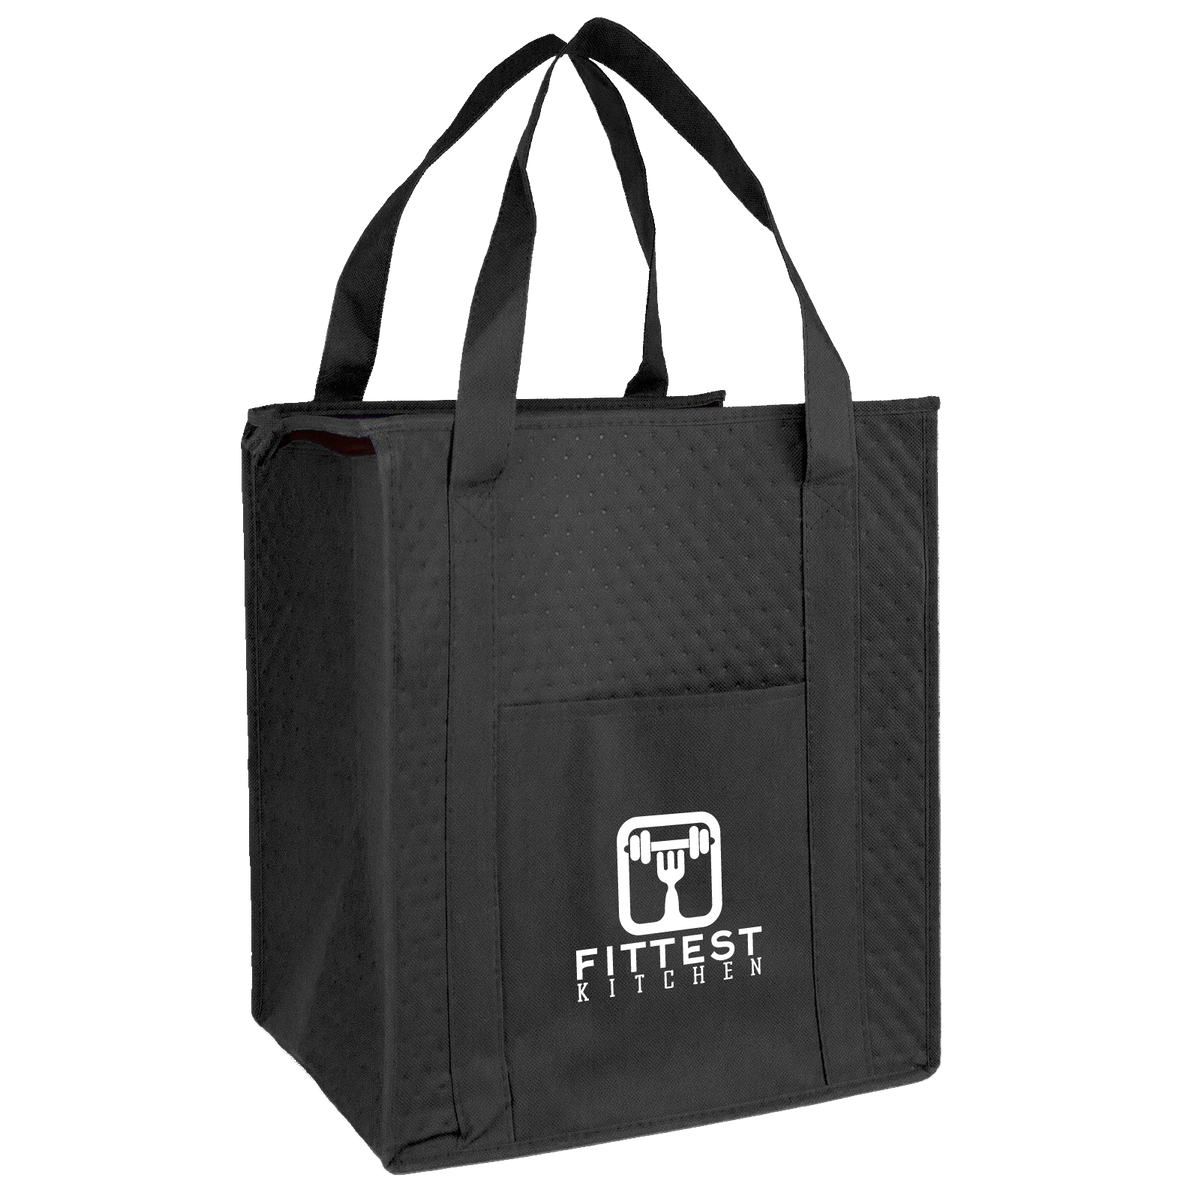 Fittest Kitchen Cooler Bag